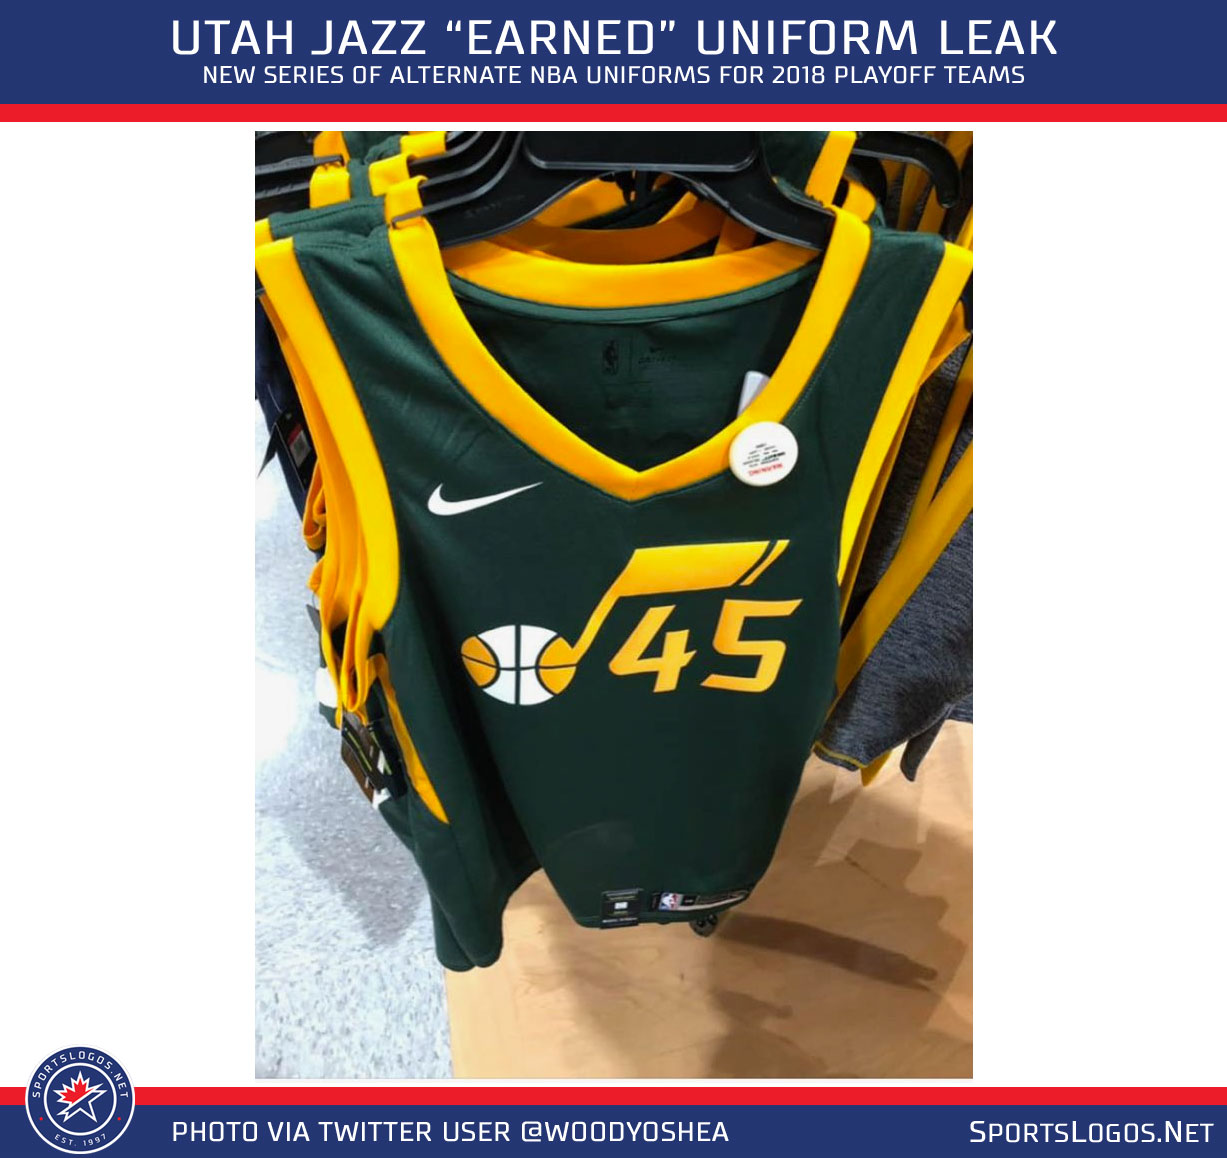 wholesale dealer 0b5ee b1149 New Earned Uniforms for Heat, Jazz, Warriors Leak | Chris ...